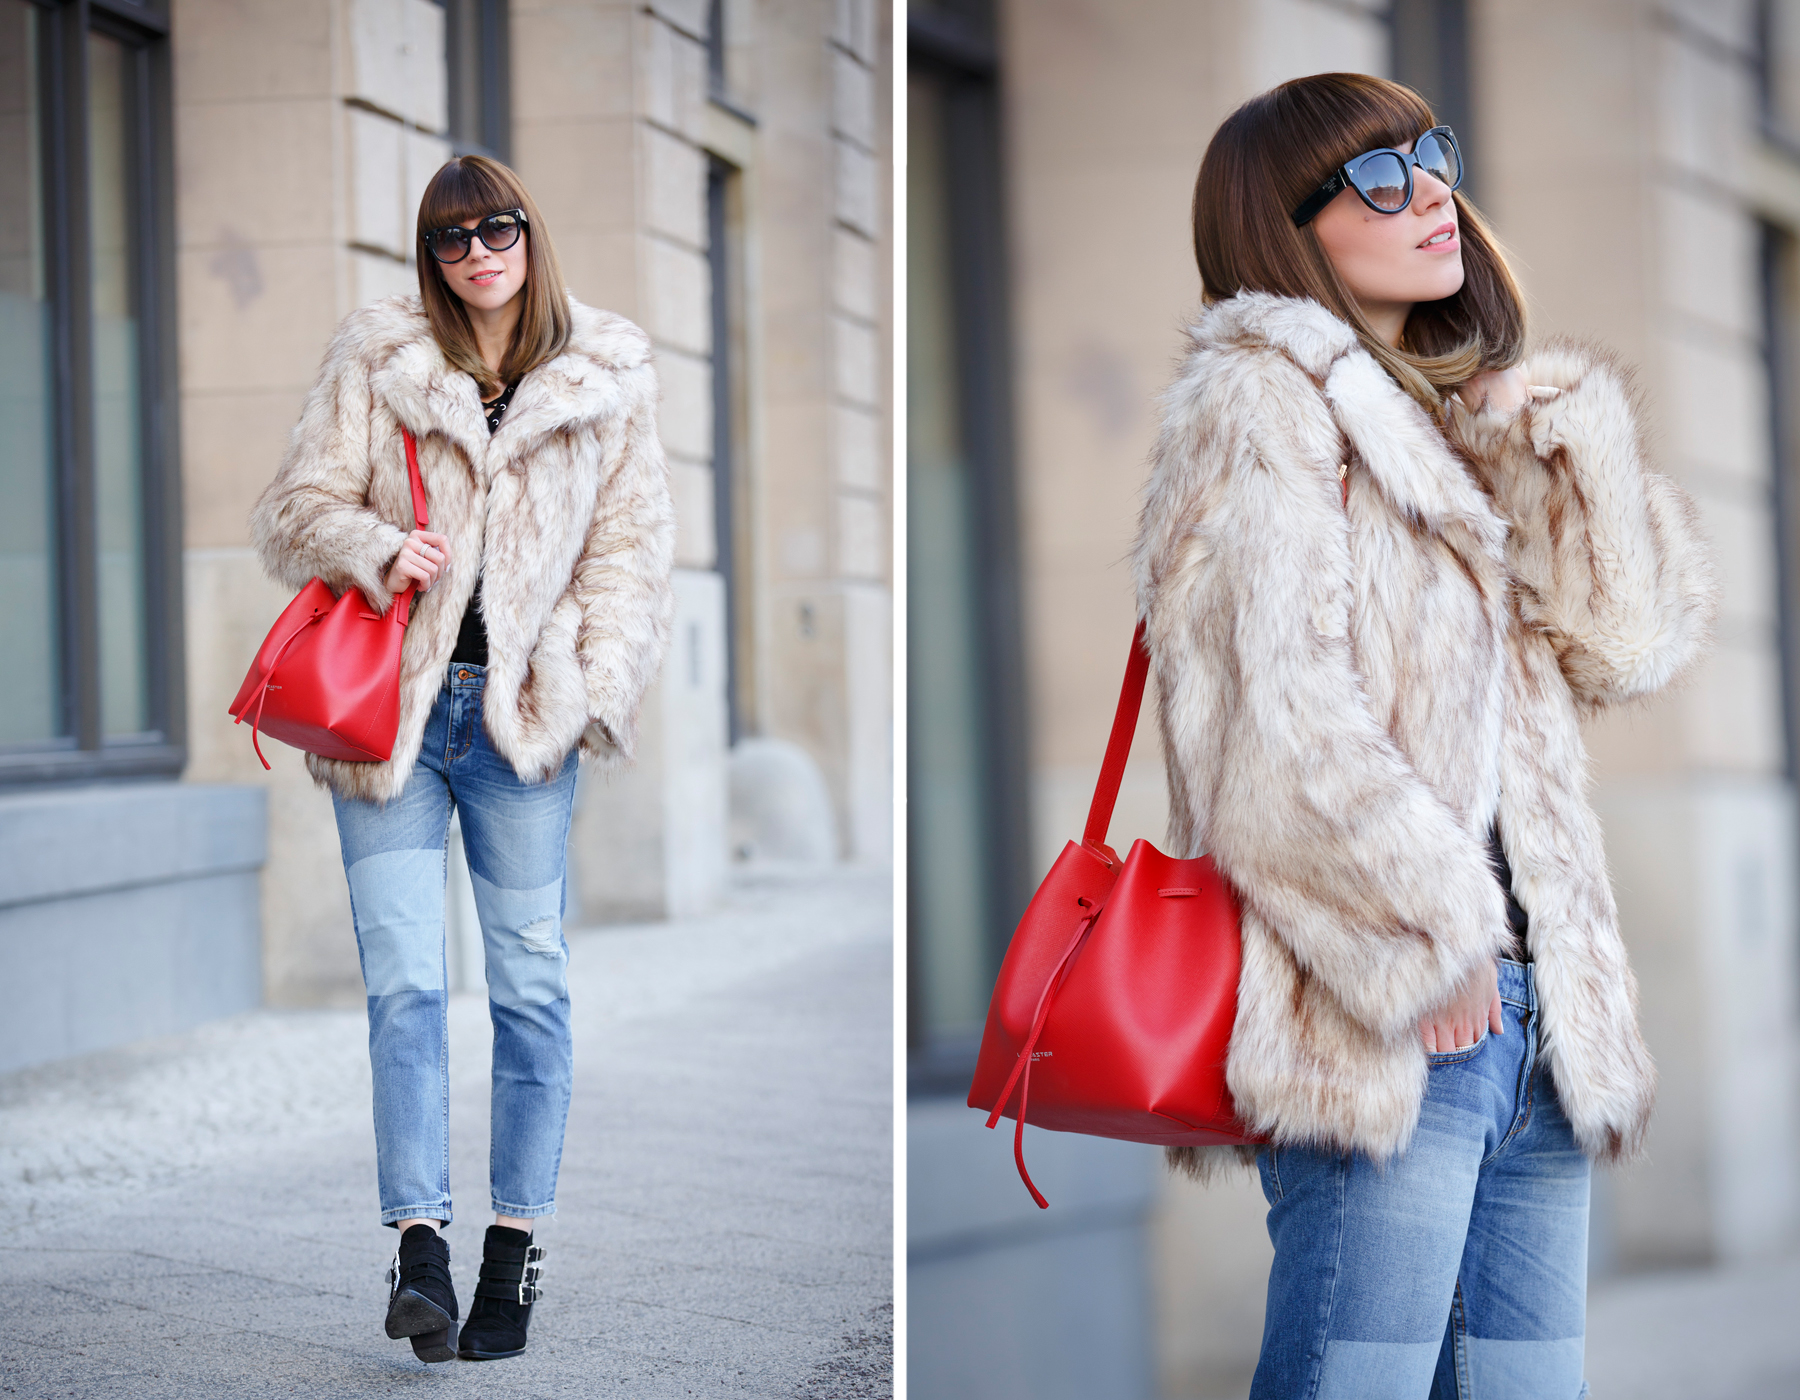 lancaster paris red bucket bag mansur gavriel lookalike patch boyfriend jeans mango fake fur coat asos black sacha booties ankle boots chloe suzanna prada sunglasses luxury style blogger cats & dogs blog ricarda schernus 6